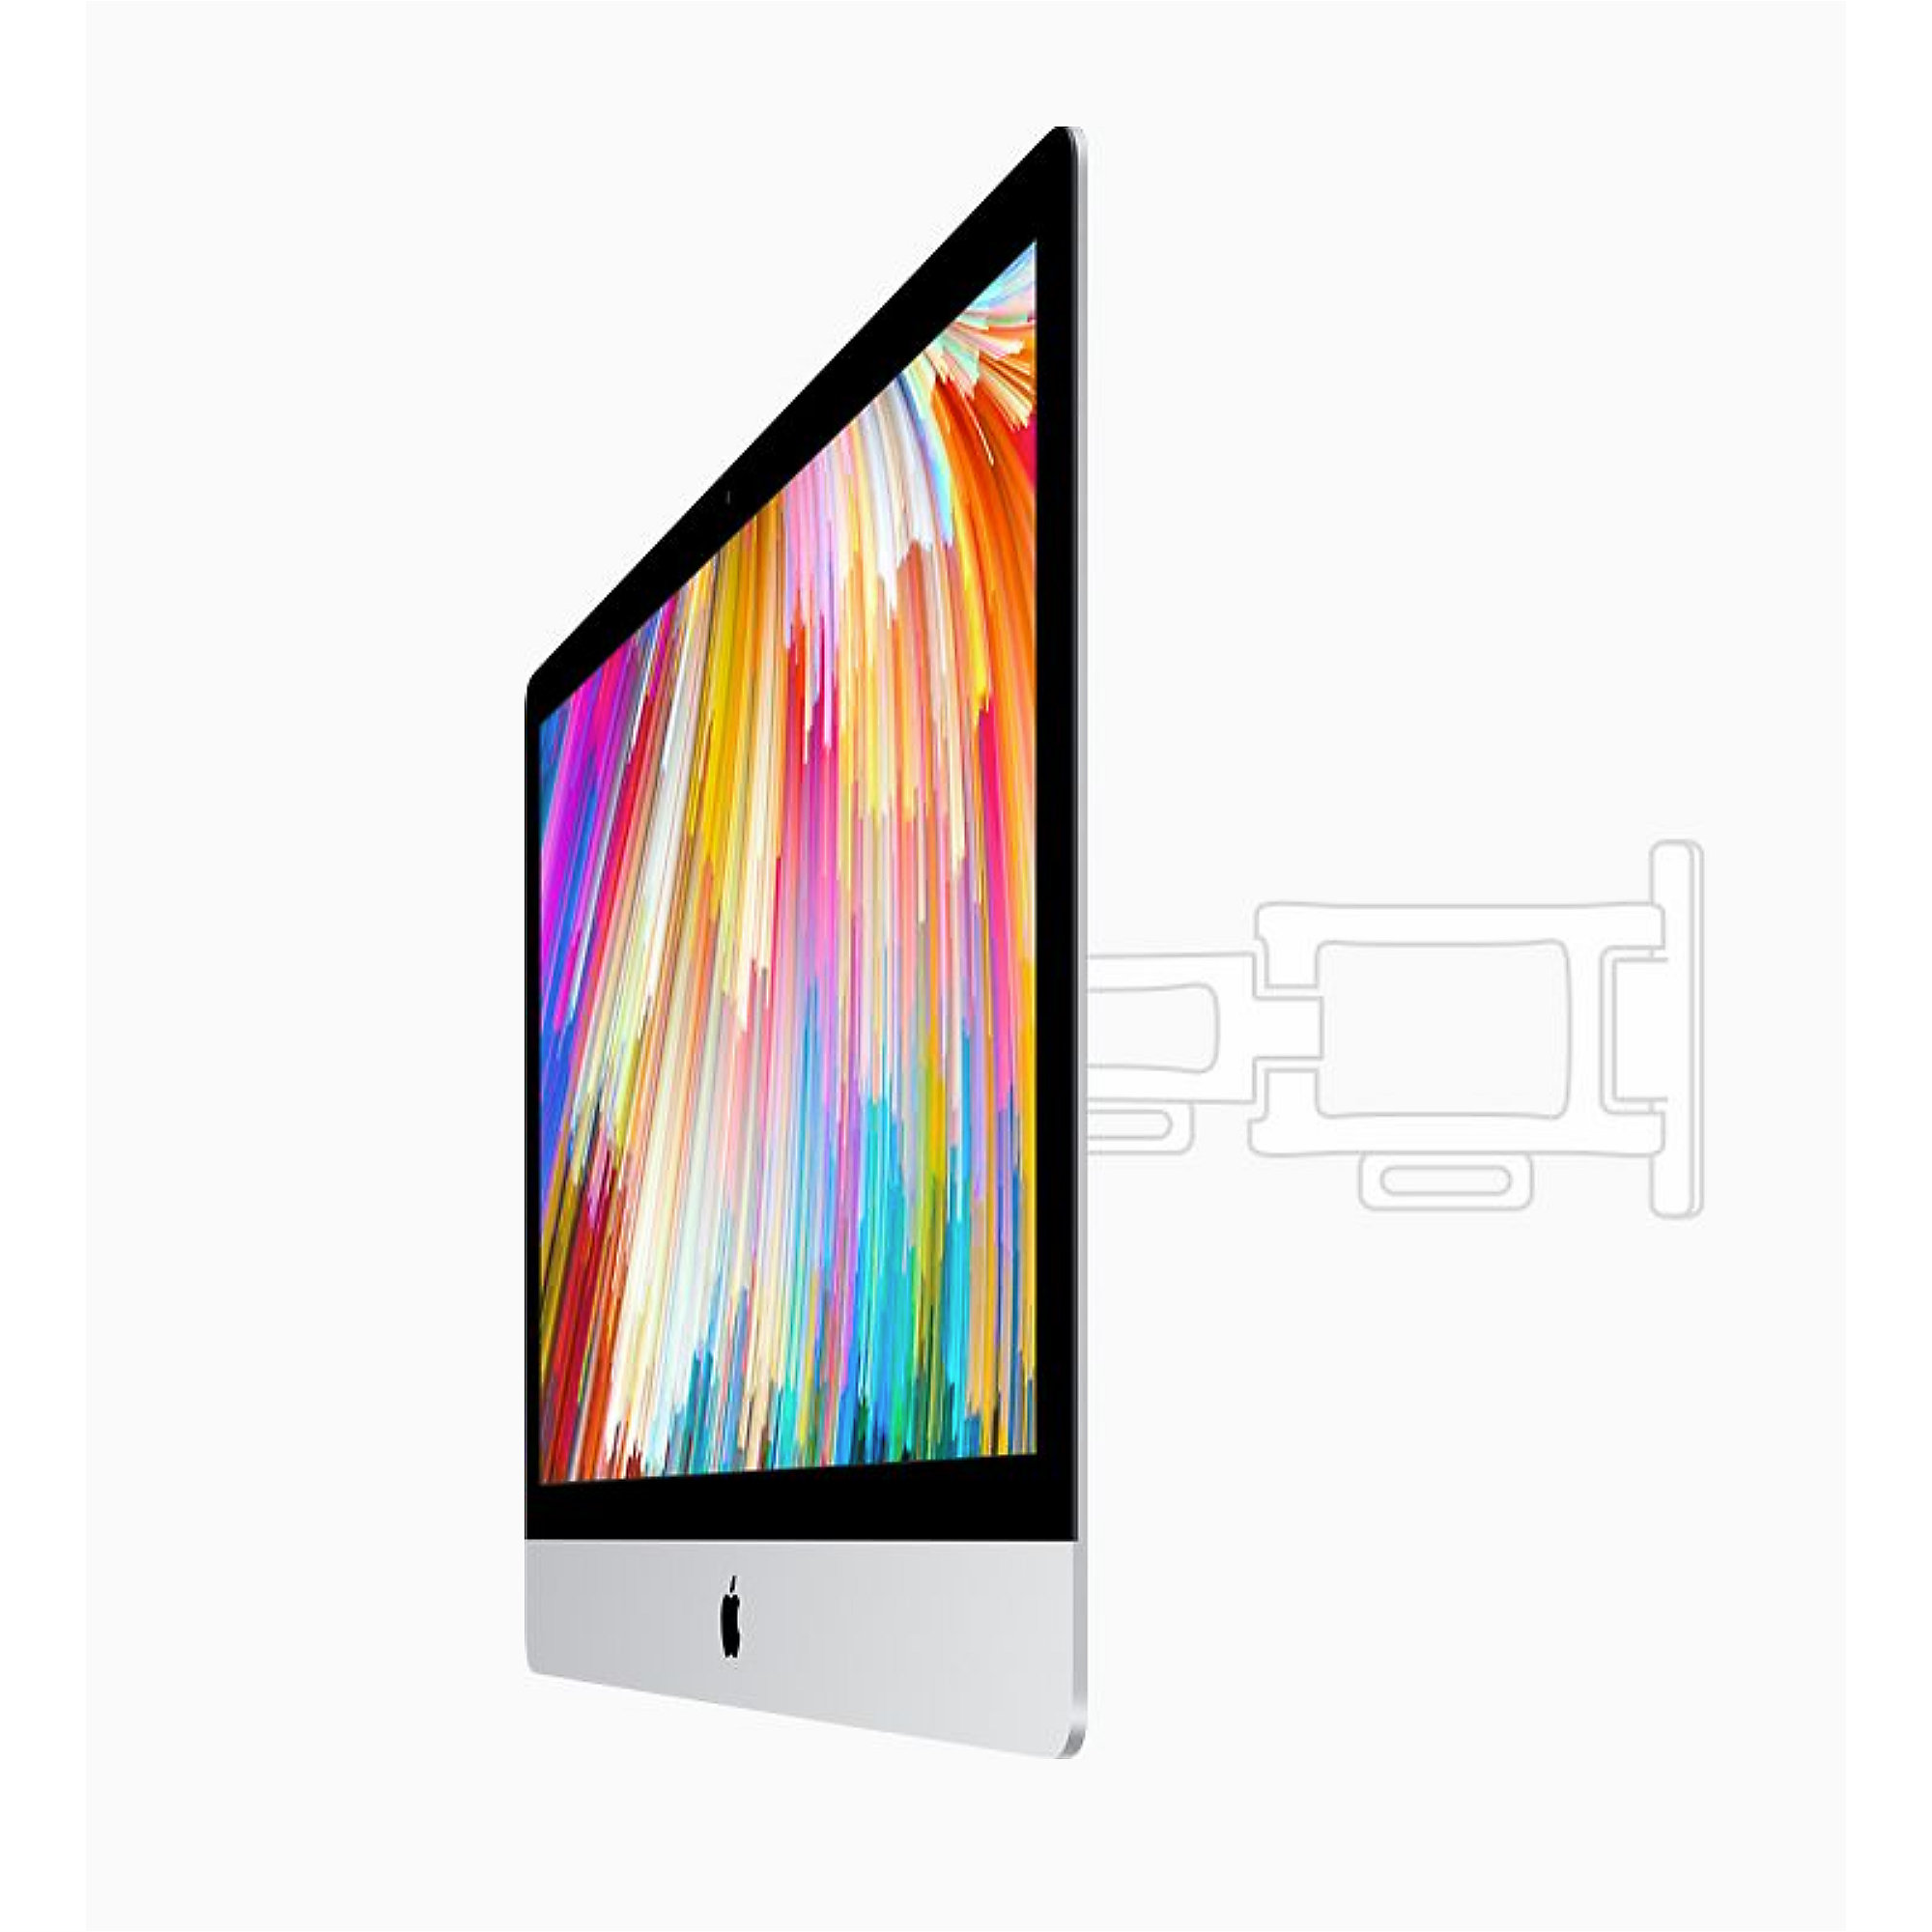 "Apple iMac 27"" Retina 5K 2017 4,2/8/256GB SSD RP575 MM + NUM VESA BTO"